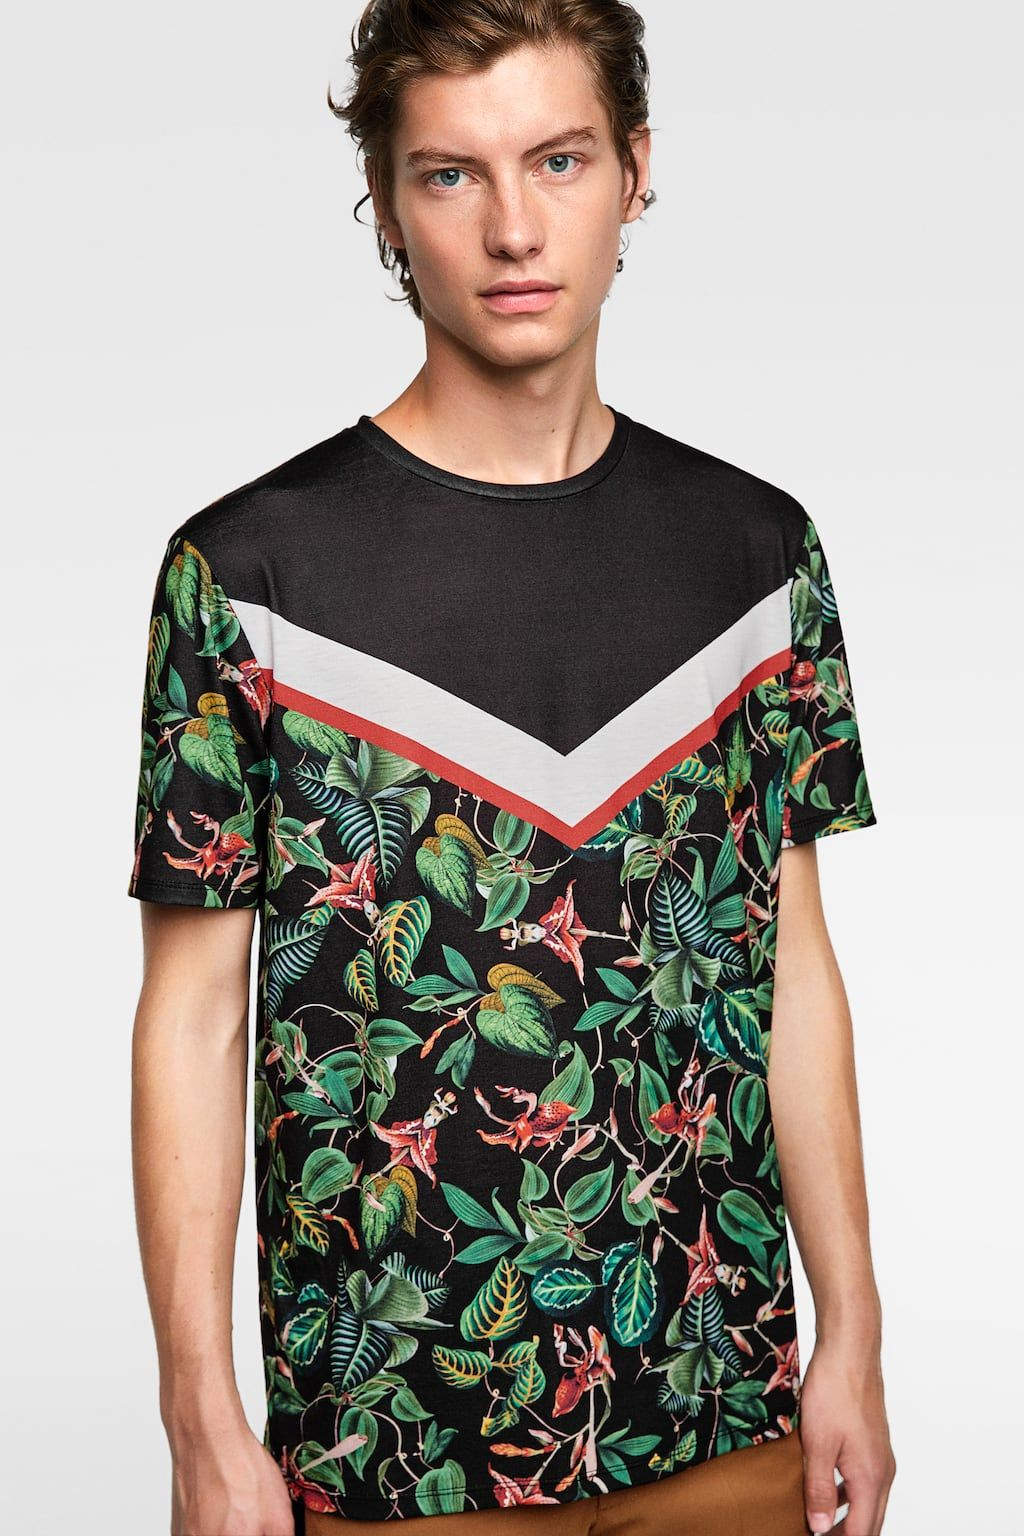 Image 2 Of Combined Printed T Shirt From Zara Hojas Tropicales T